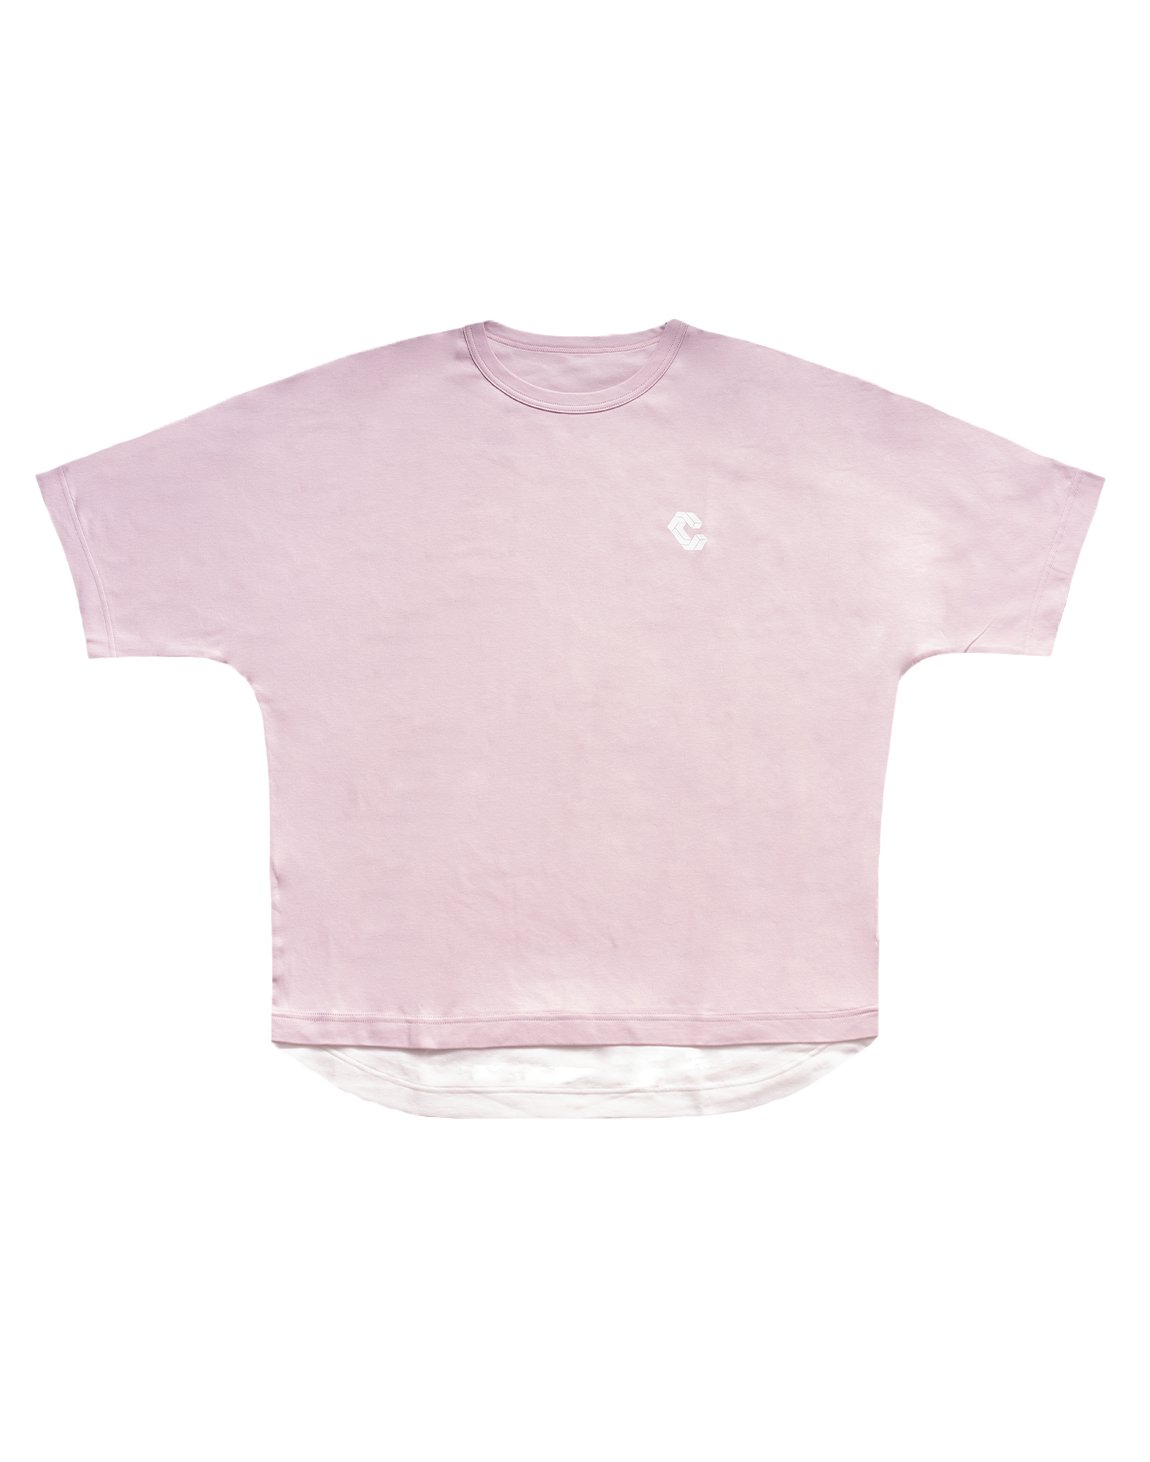 <img class='new_mark_img1' src='https://img.shop-pro.jp/img/new/icons1.gif' style='border:none;display:inline;margin:0px;padding:0px;width:auto;' />LAYERED LOOK  OVER SIZE T-SHIRTS【PINK】